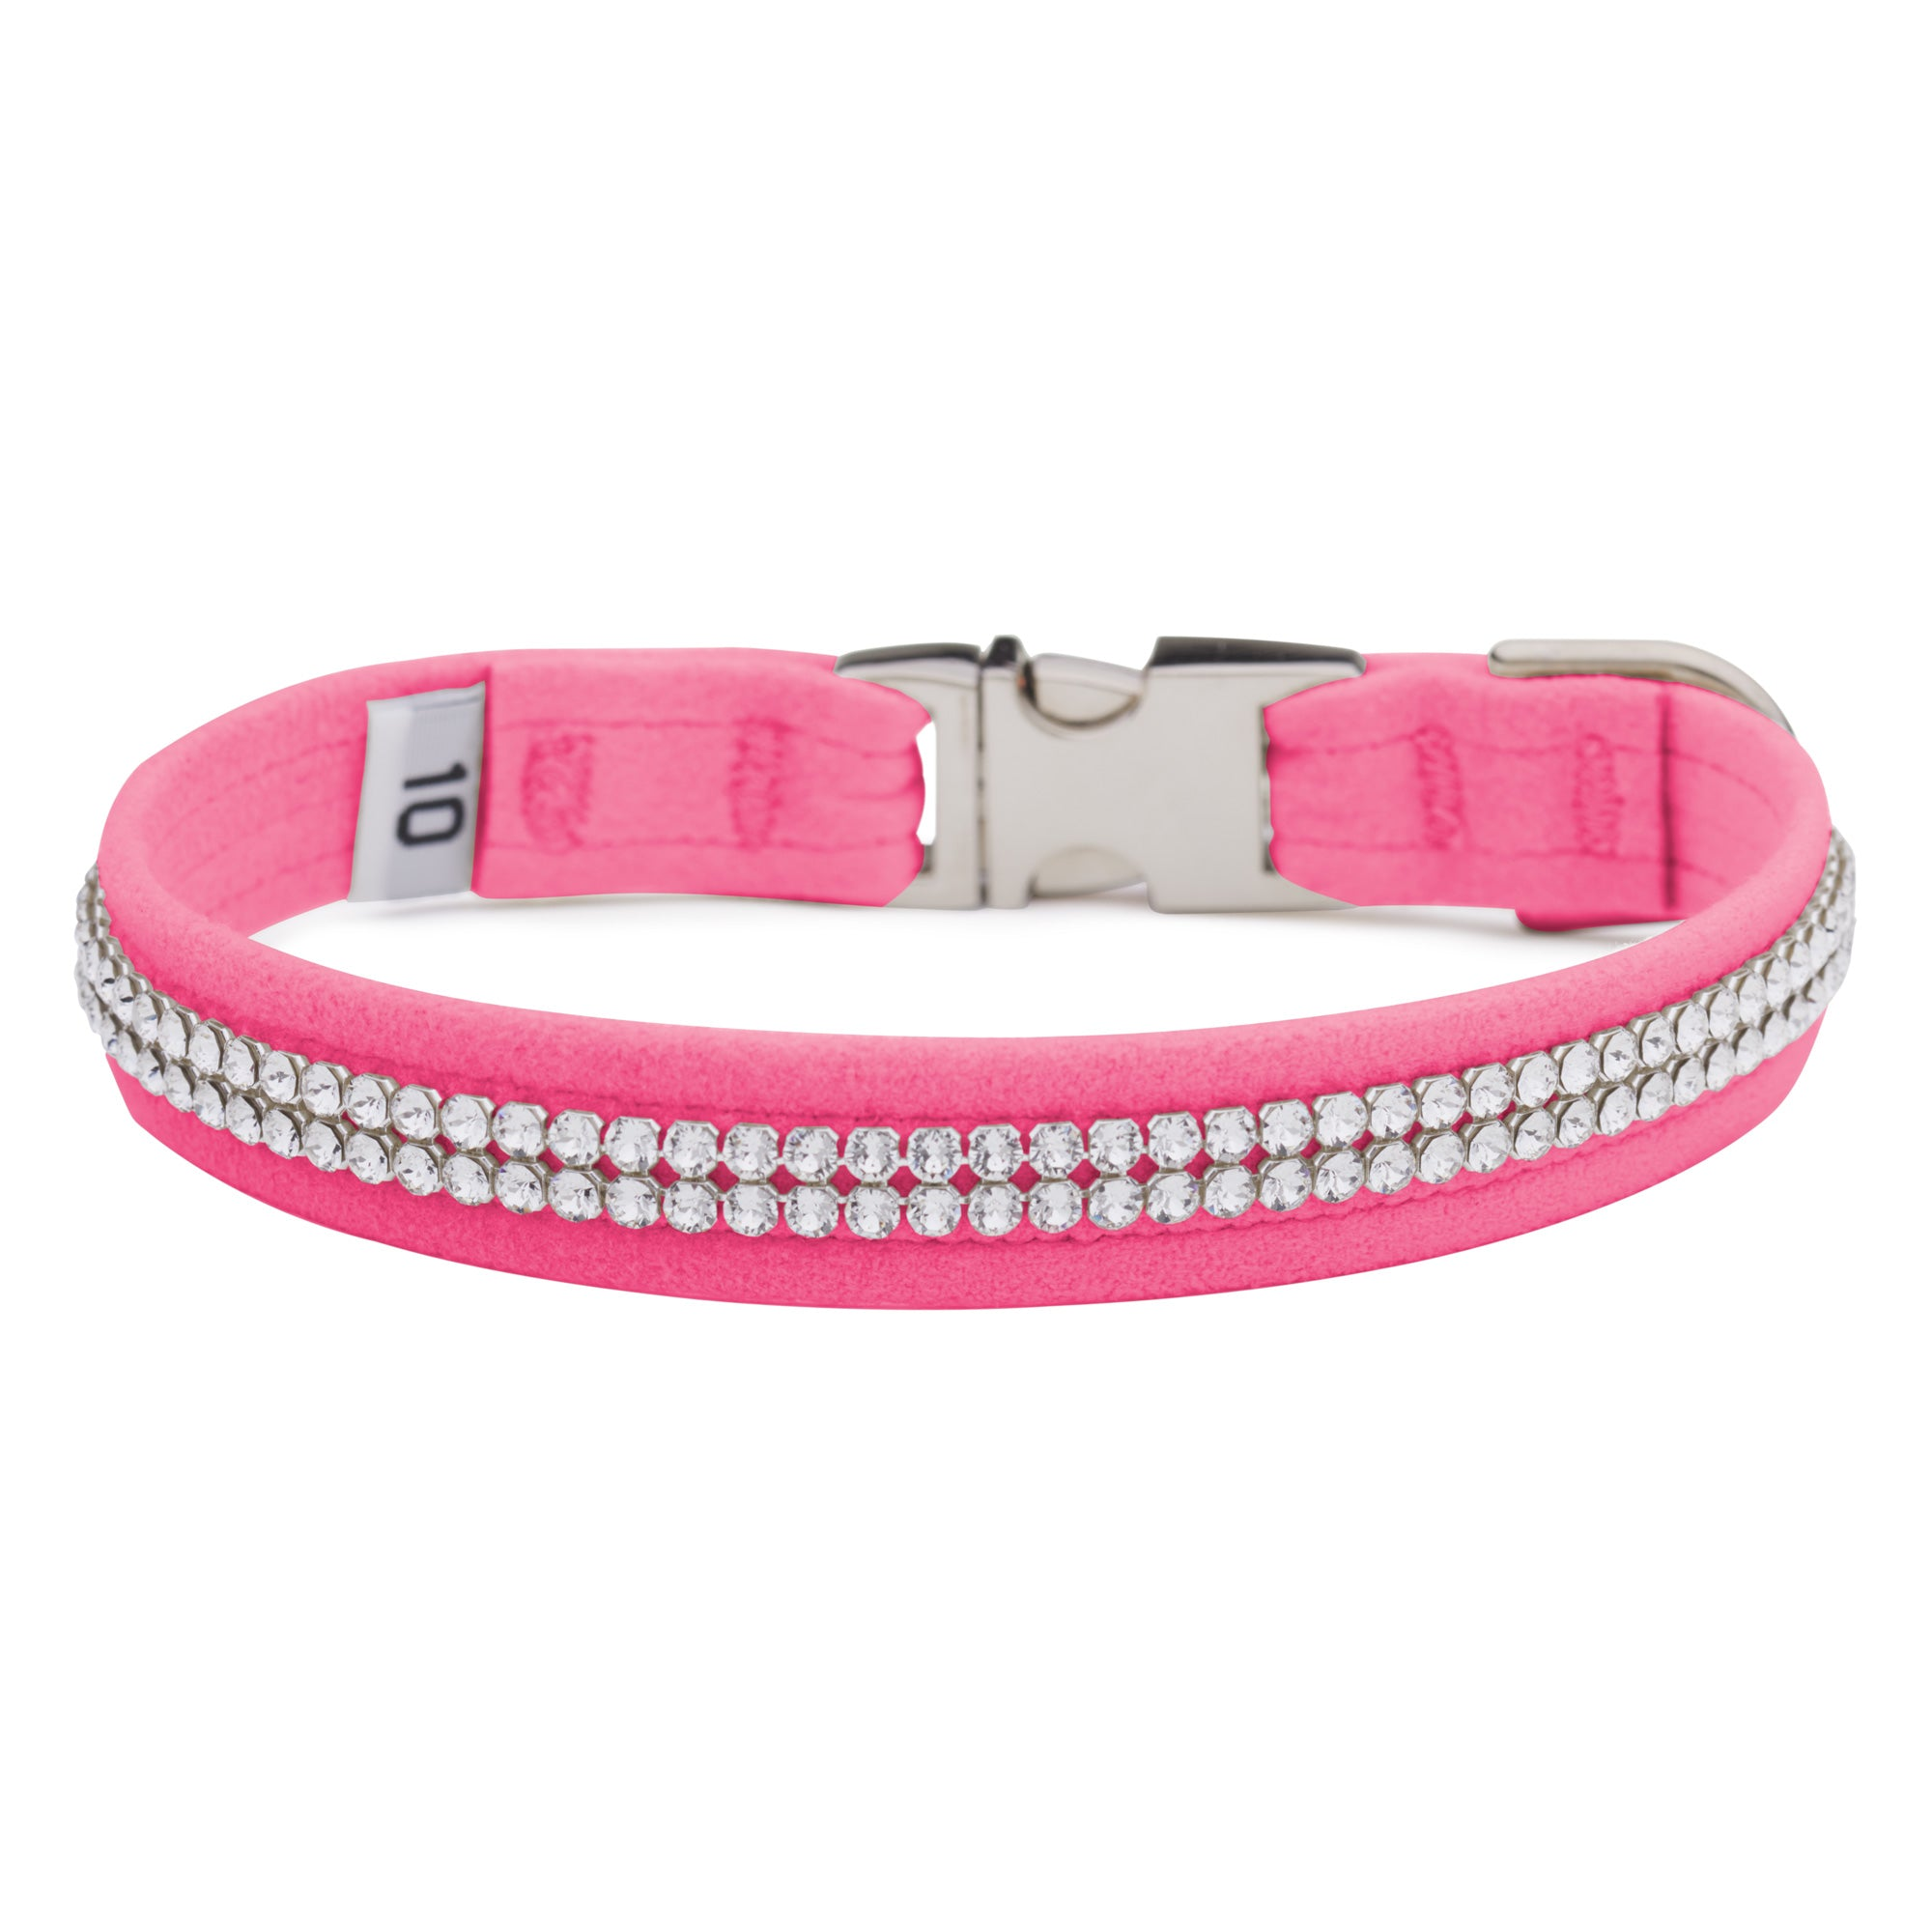 Pink Sapphire 2 Row Giltmore Perfect Fit Collar